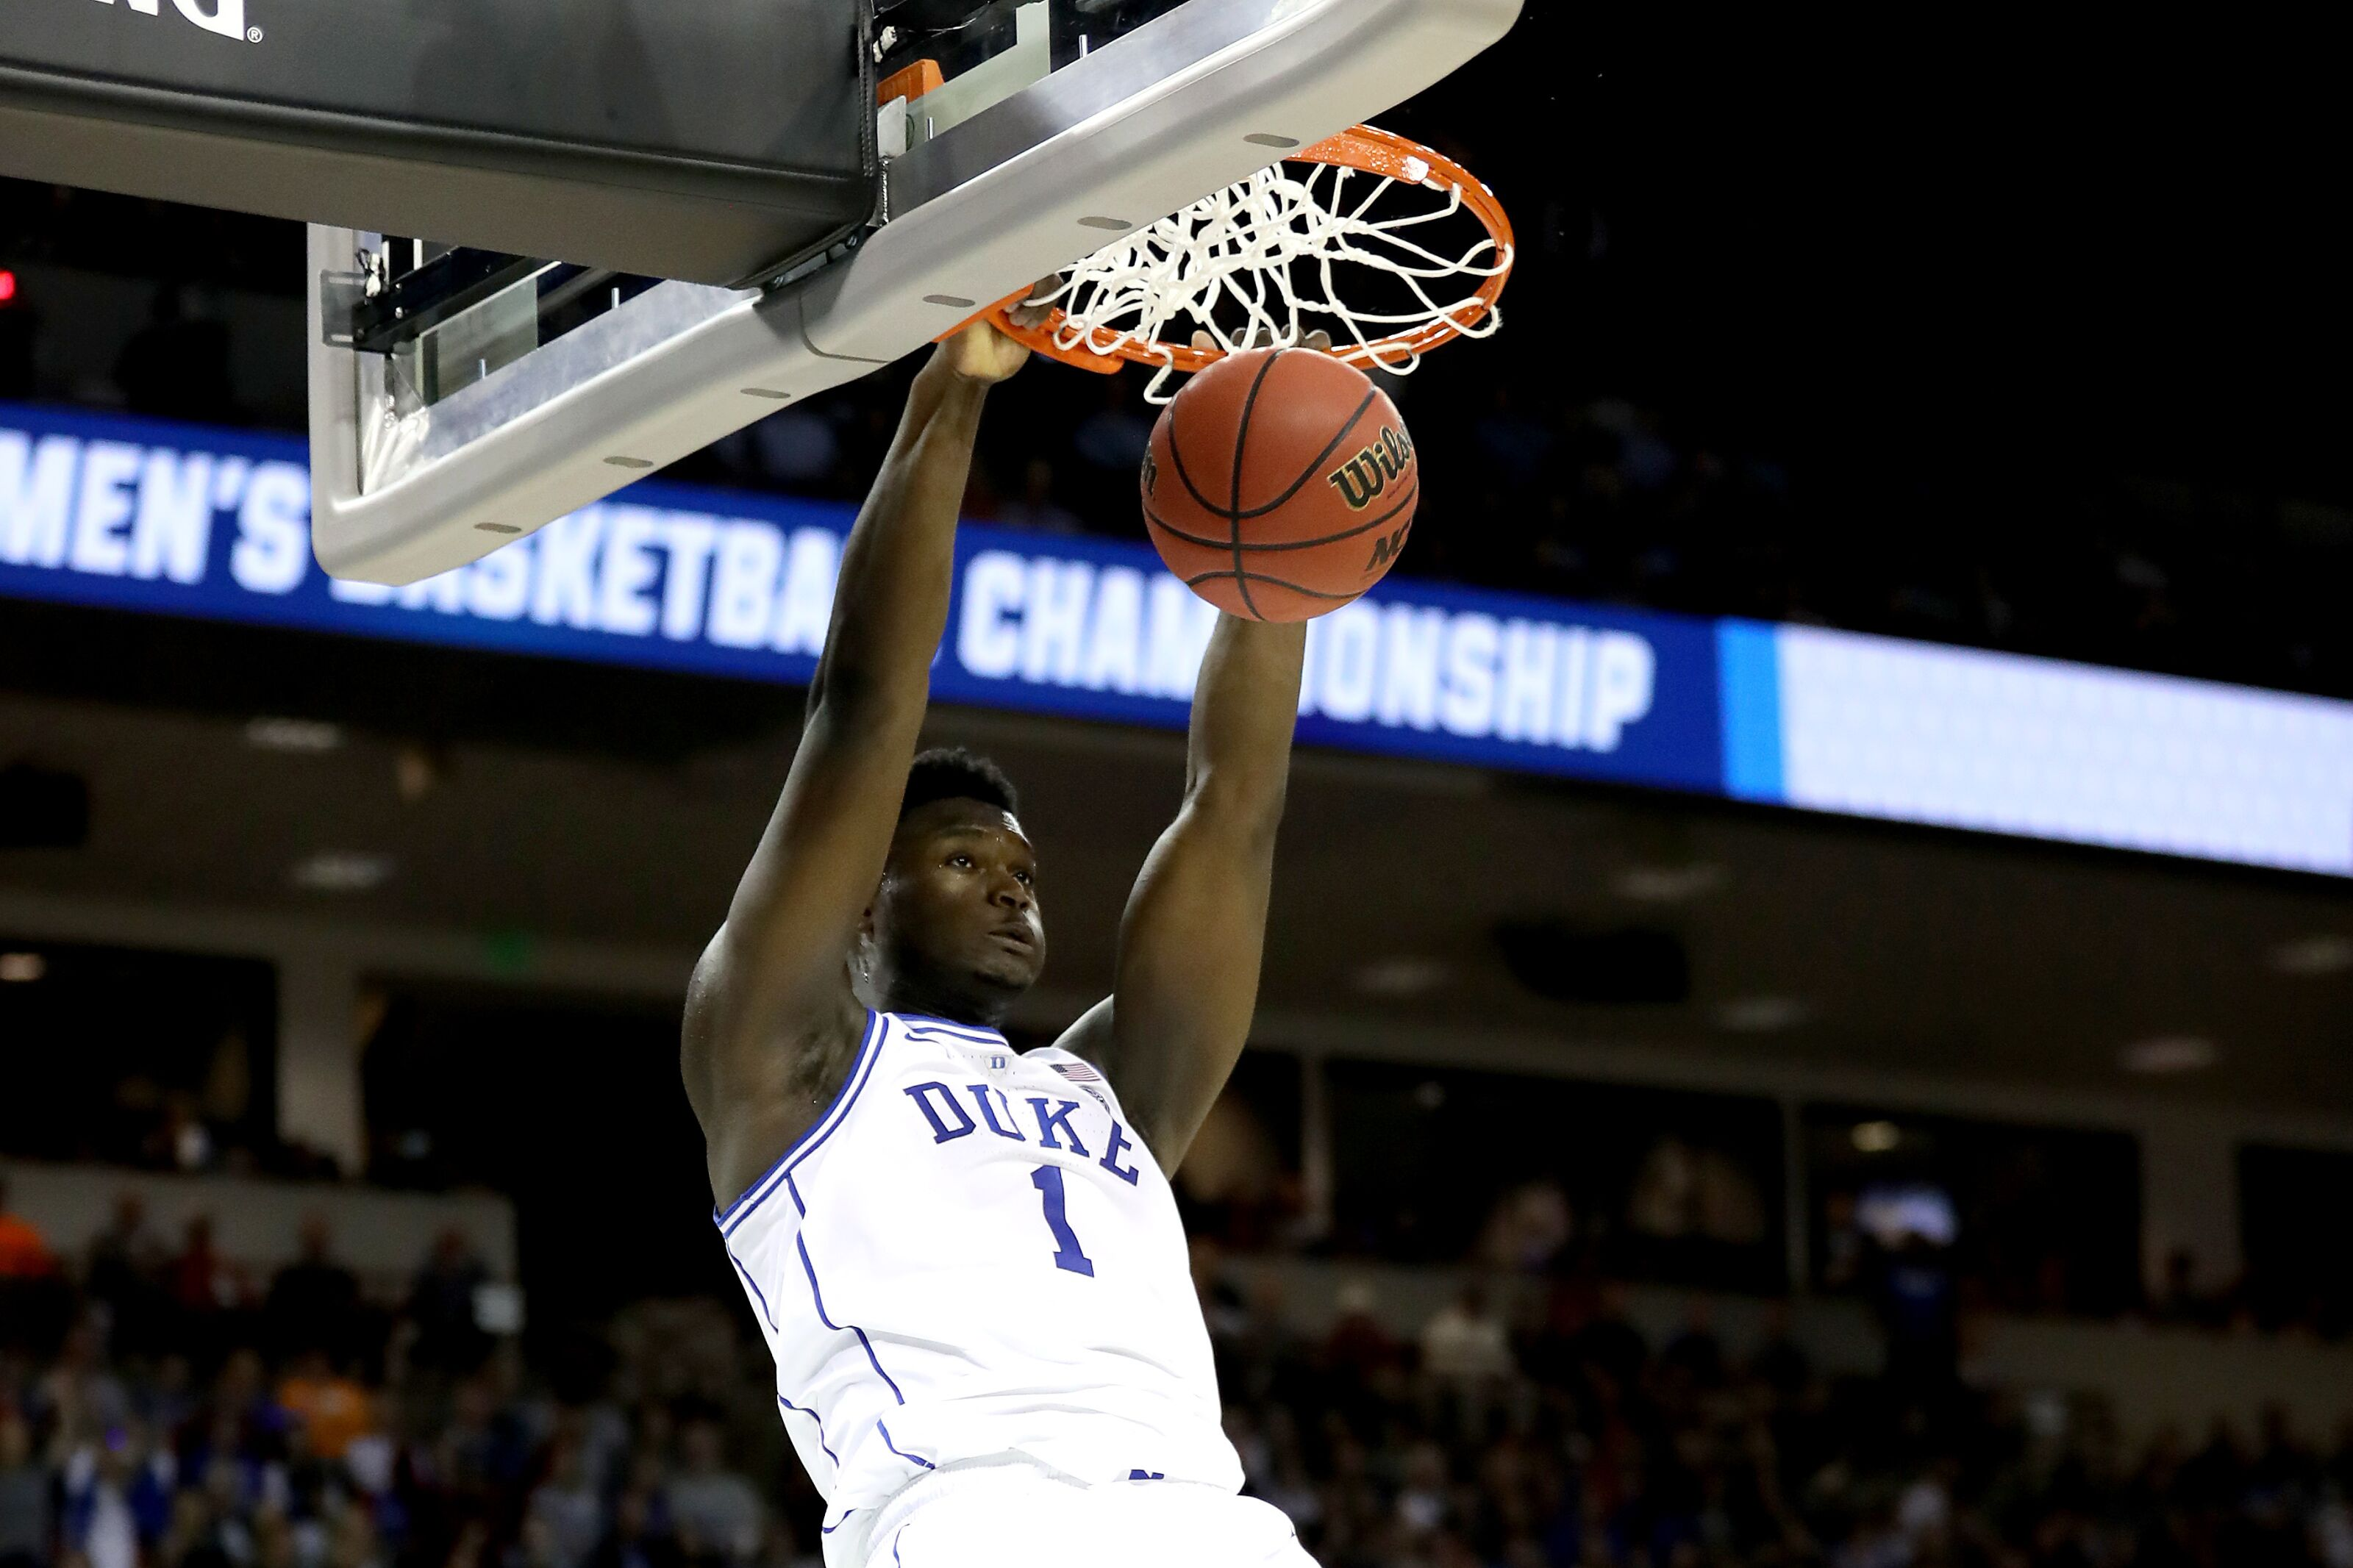 Zion Williamson is definitely going to dunk on Tacko Fall now